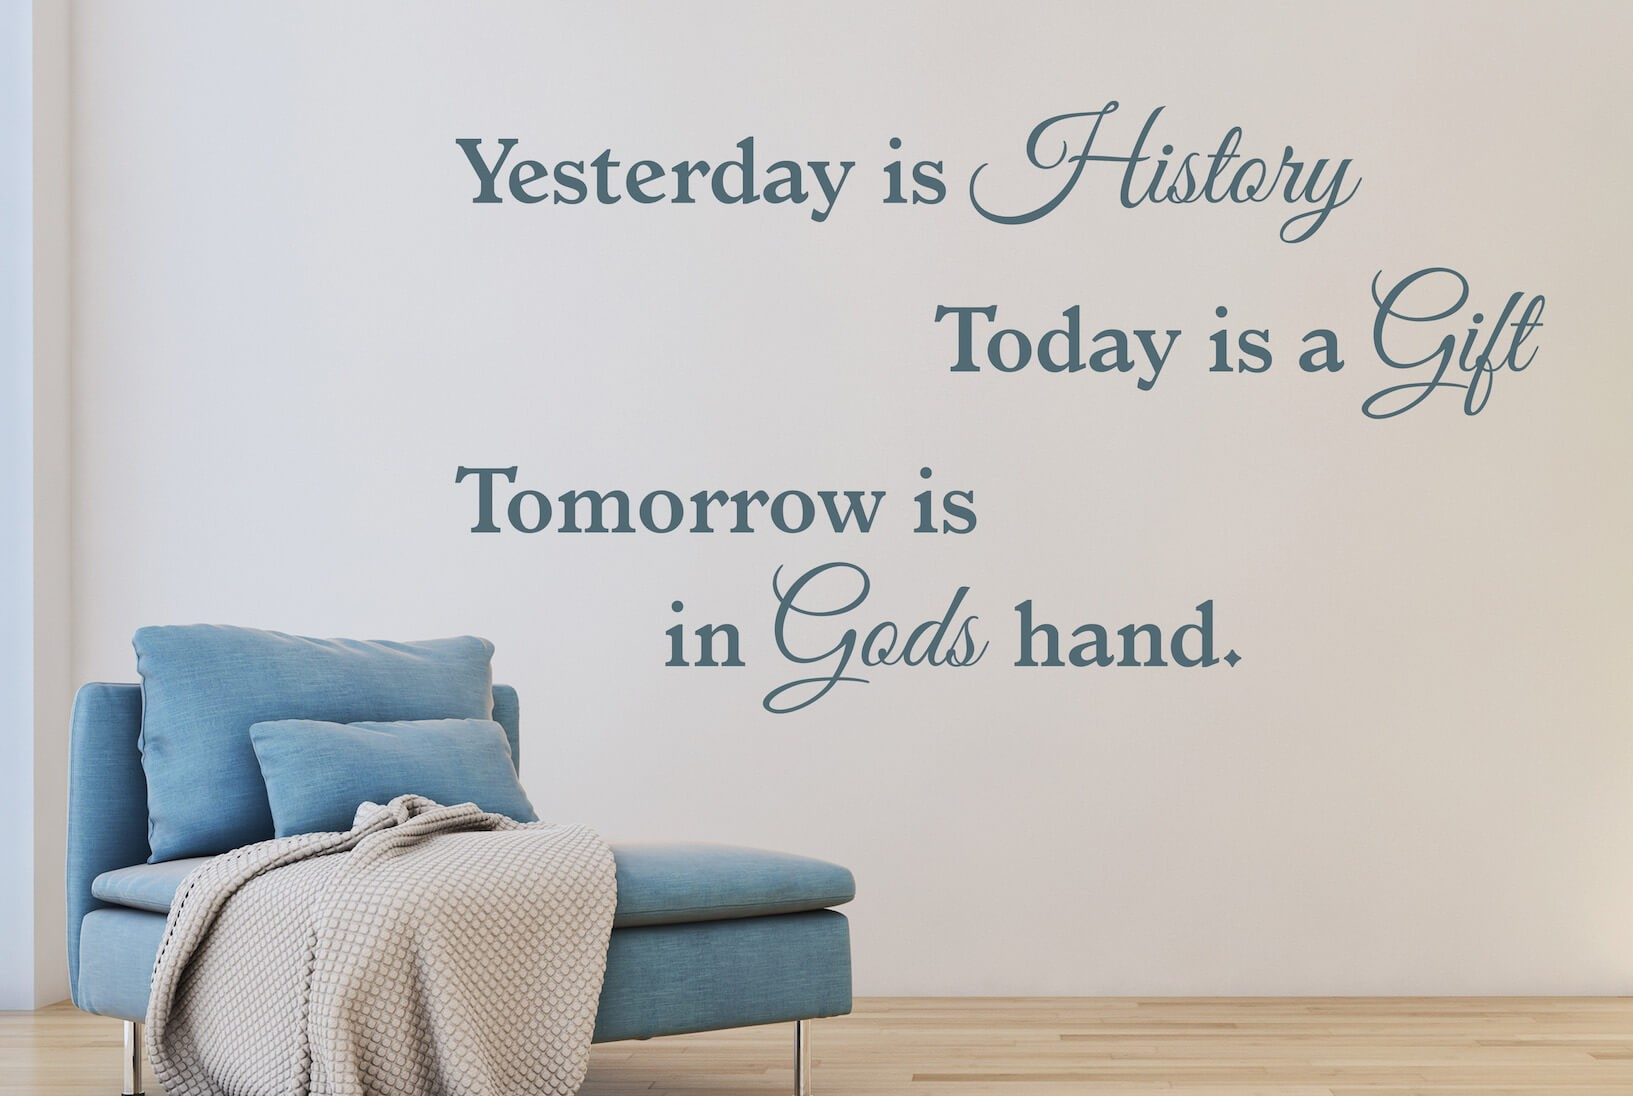 Muursticker Yesterday is History Today is a Gift